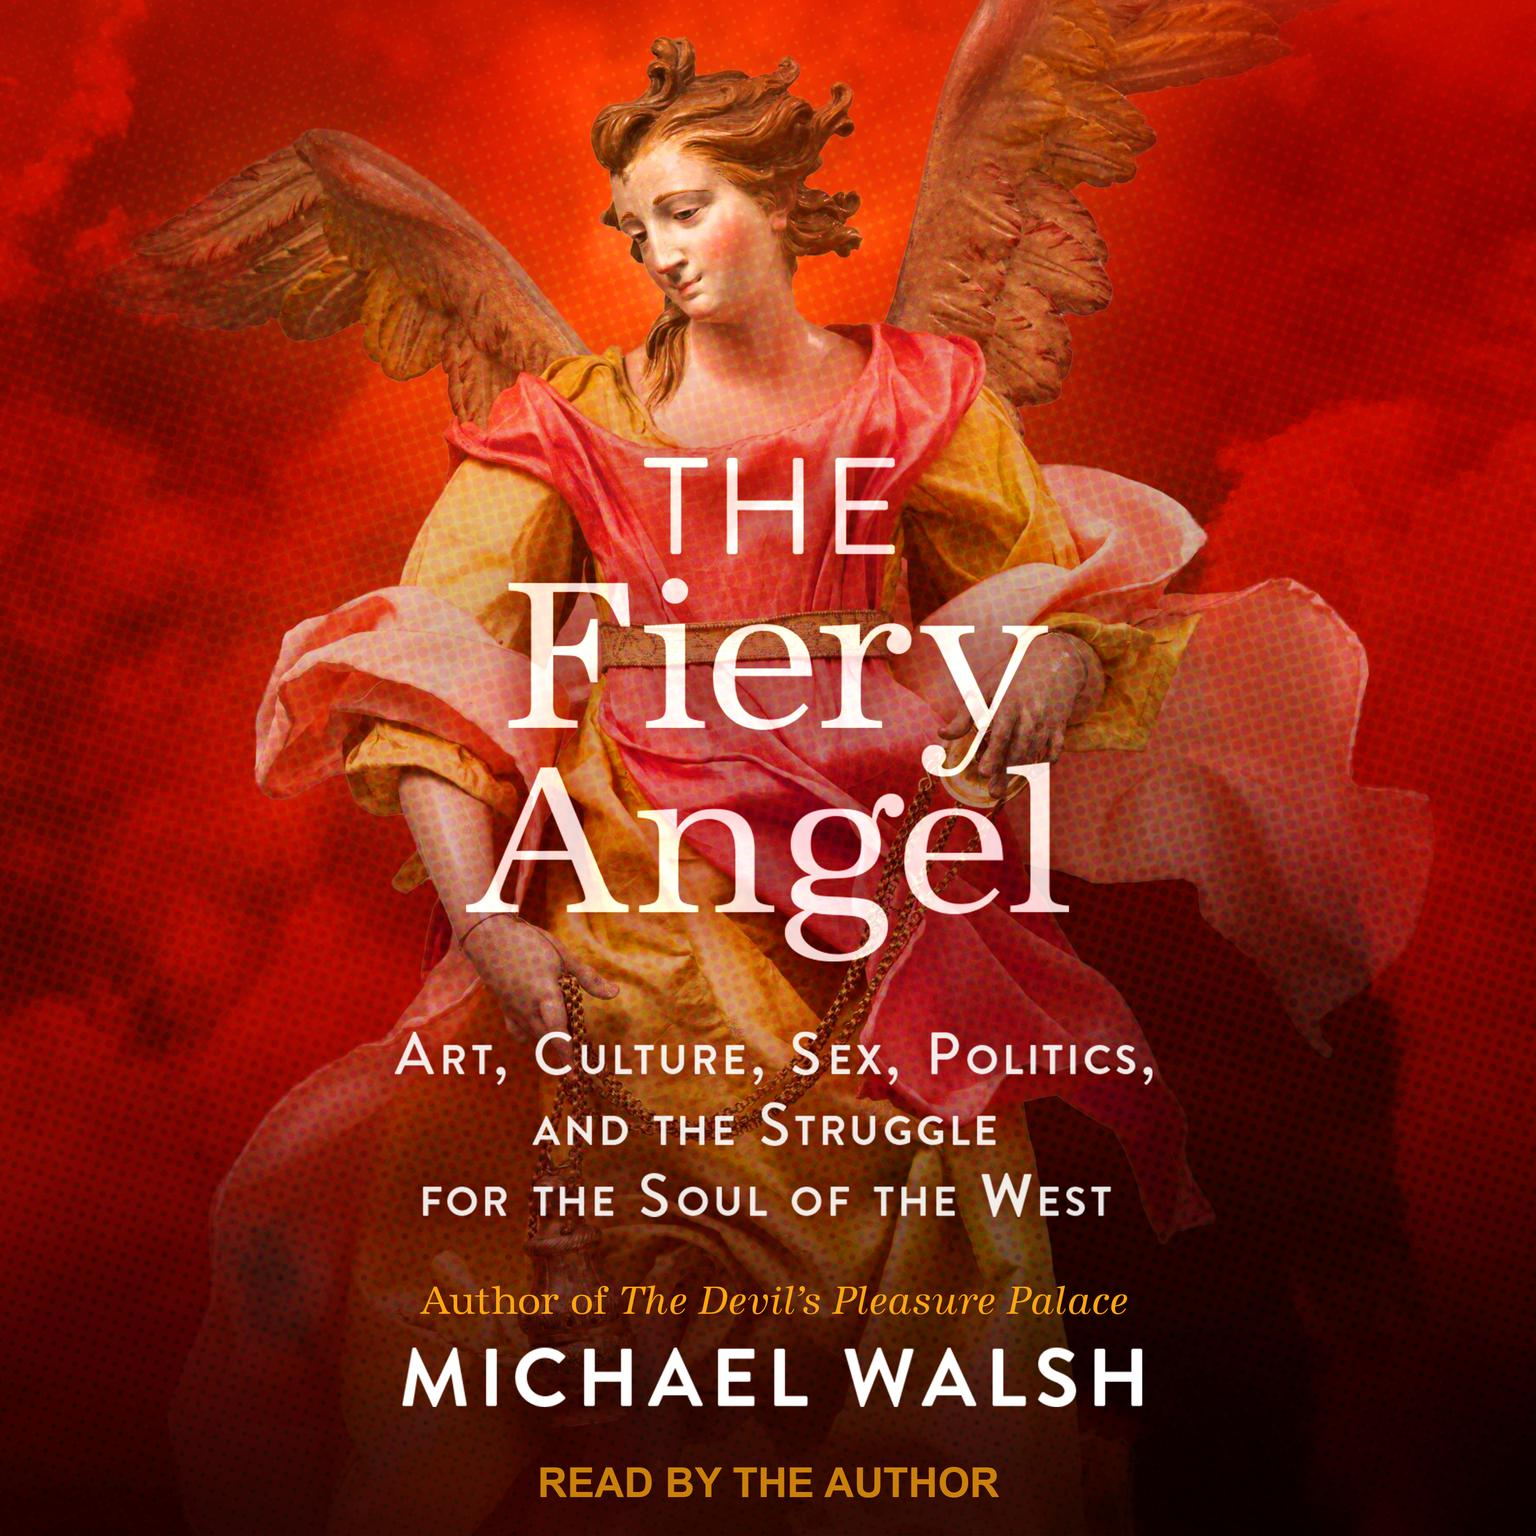 The Fiery Angel: Art, Culture, Sex, Politics, and the Struggle for the Soul of the West Audiobook, by Michael Walsh